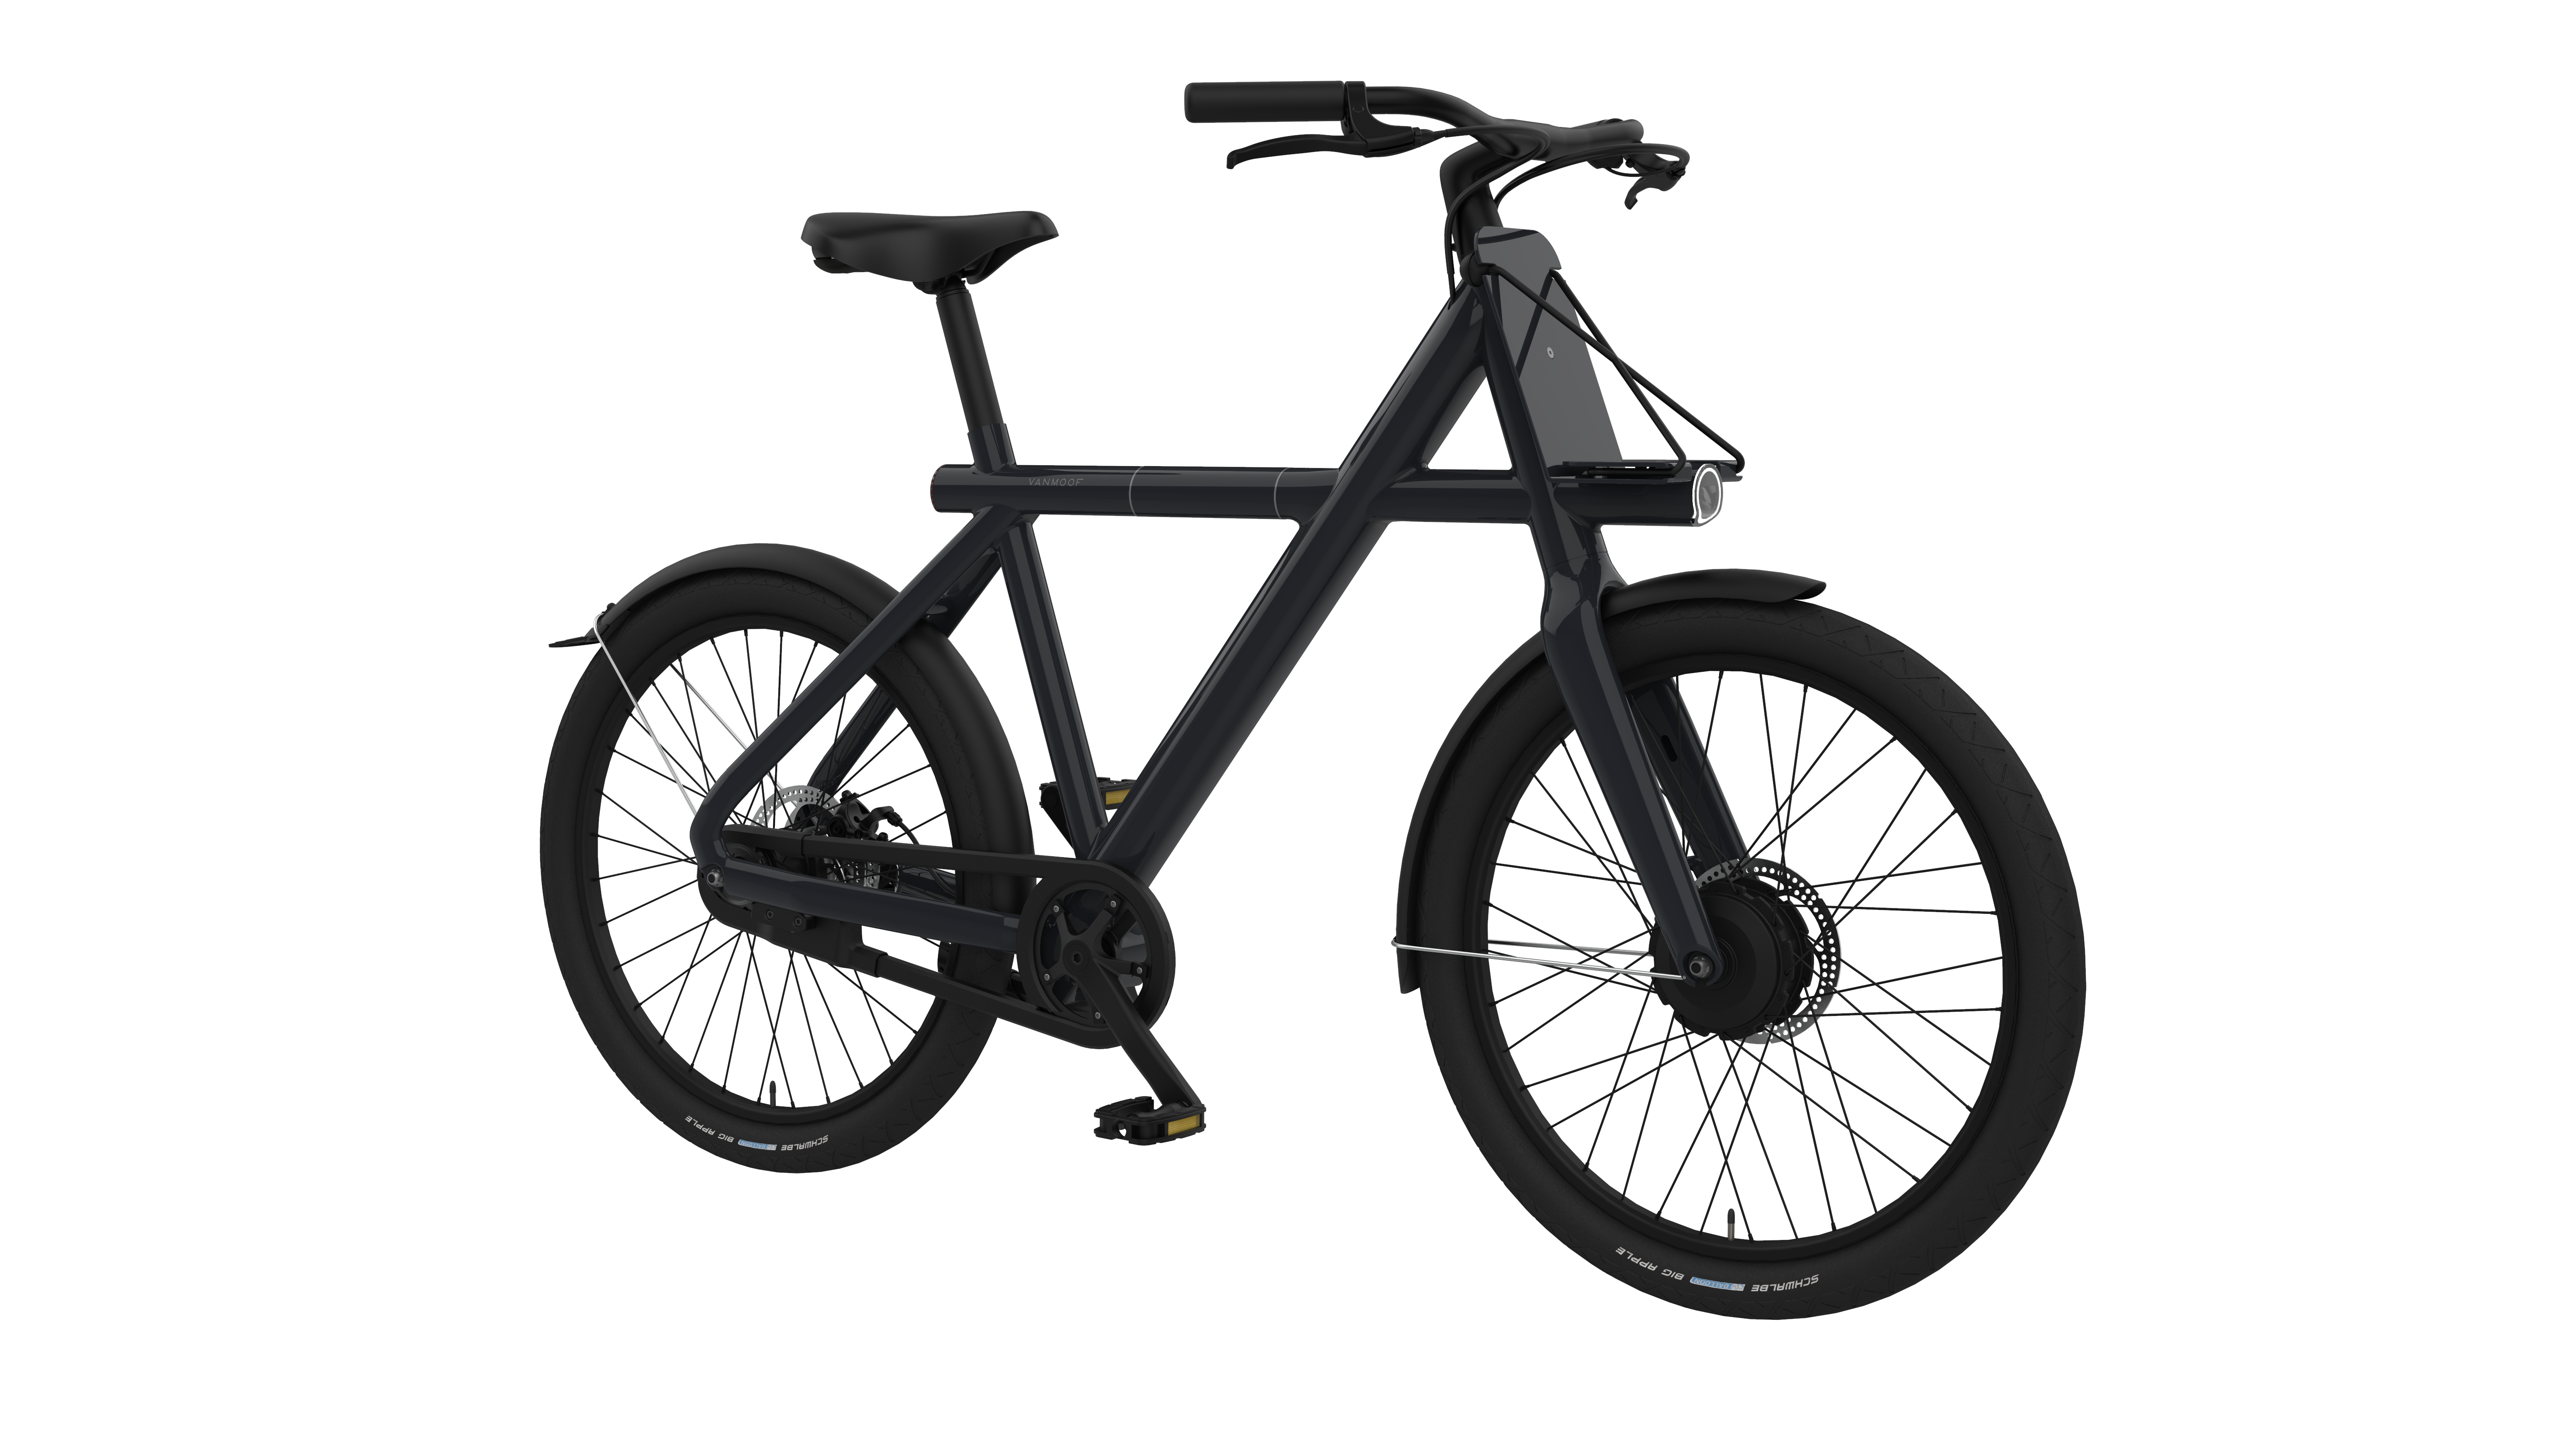 VanMoof's new theft-defying Electrified bikes are serious, fun